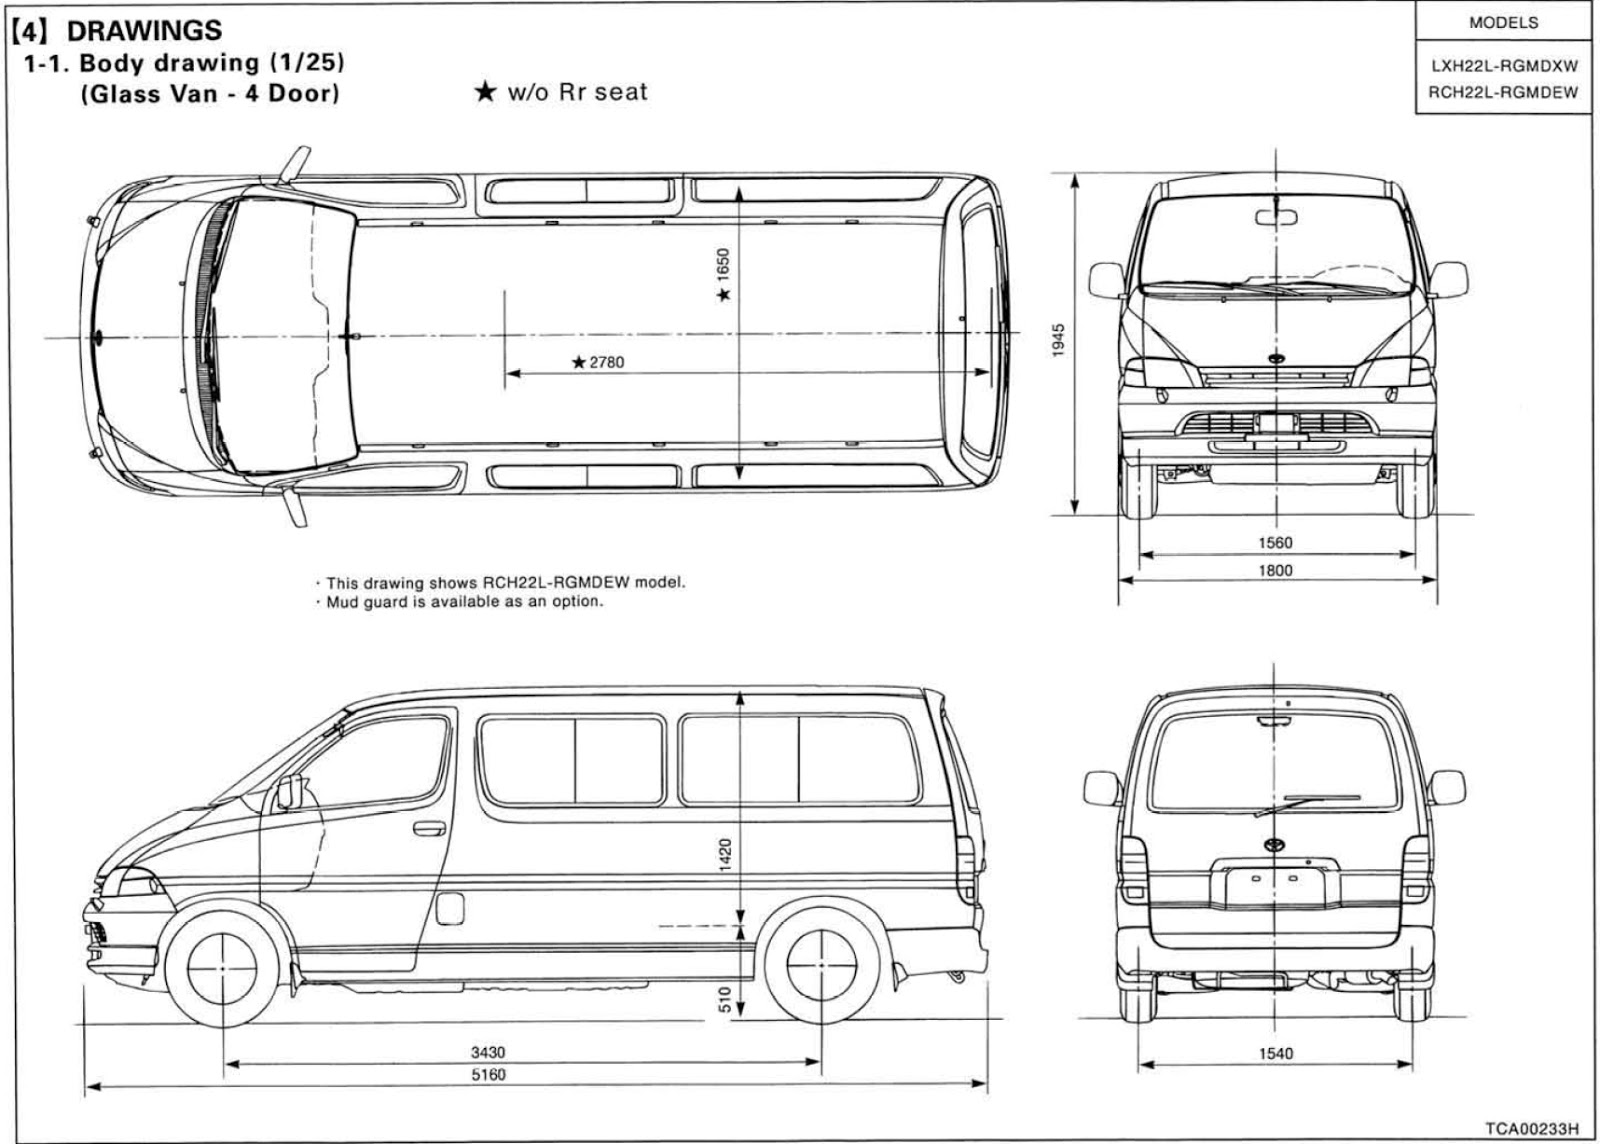 Perfect Toyota Hiace Wiring Diagram Photo - Best Images for wiring on toyota sequoia wiring-diagram, toyota air conditioner diagram, toyota electrical schematics, toyota jbl wire harness diagram, toyota engine diagram, 66 punch down block diagram, toyota tundra heater control diagrams, electrical service diagram, toyota repair diagrams, standard electrical symbols diagram, toyota electrical connectors, toyota forklift diagram, toyota transmission parts diagram, toyota transmission rebuild diagram, toyota tundra electrical diagram, toyota sienna wiring-diagram, toyota land cruiser wiring-diagram, toyota supra wiring-diagram, dodge ram 2500 power steering diagram, 1999 toyota camry electrical diagram,